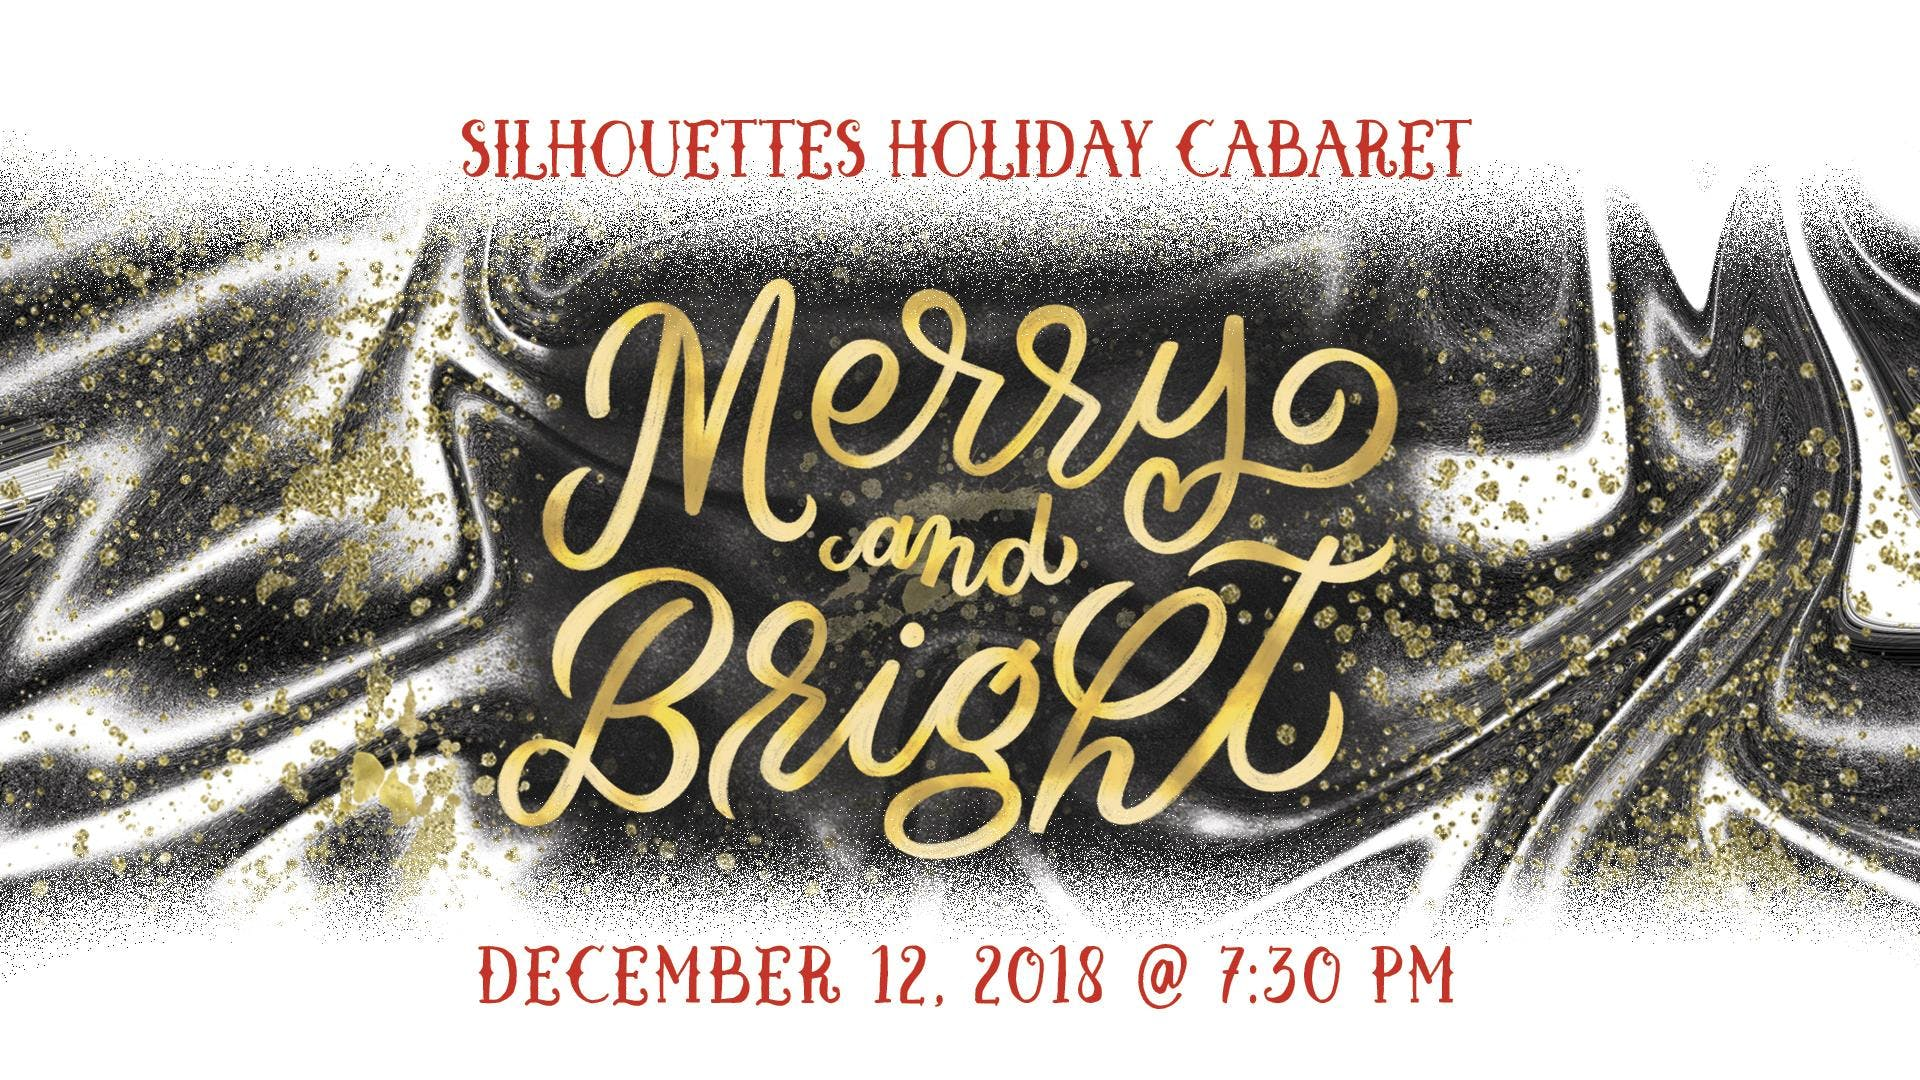 Silhouettes Holiday Cabaret: Merry and Bright